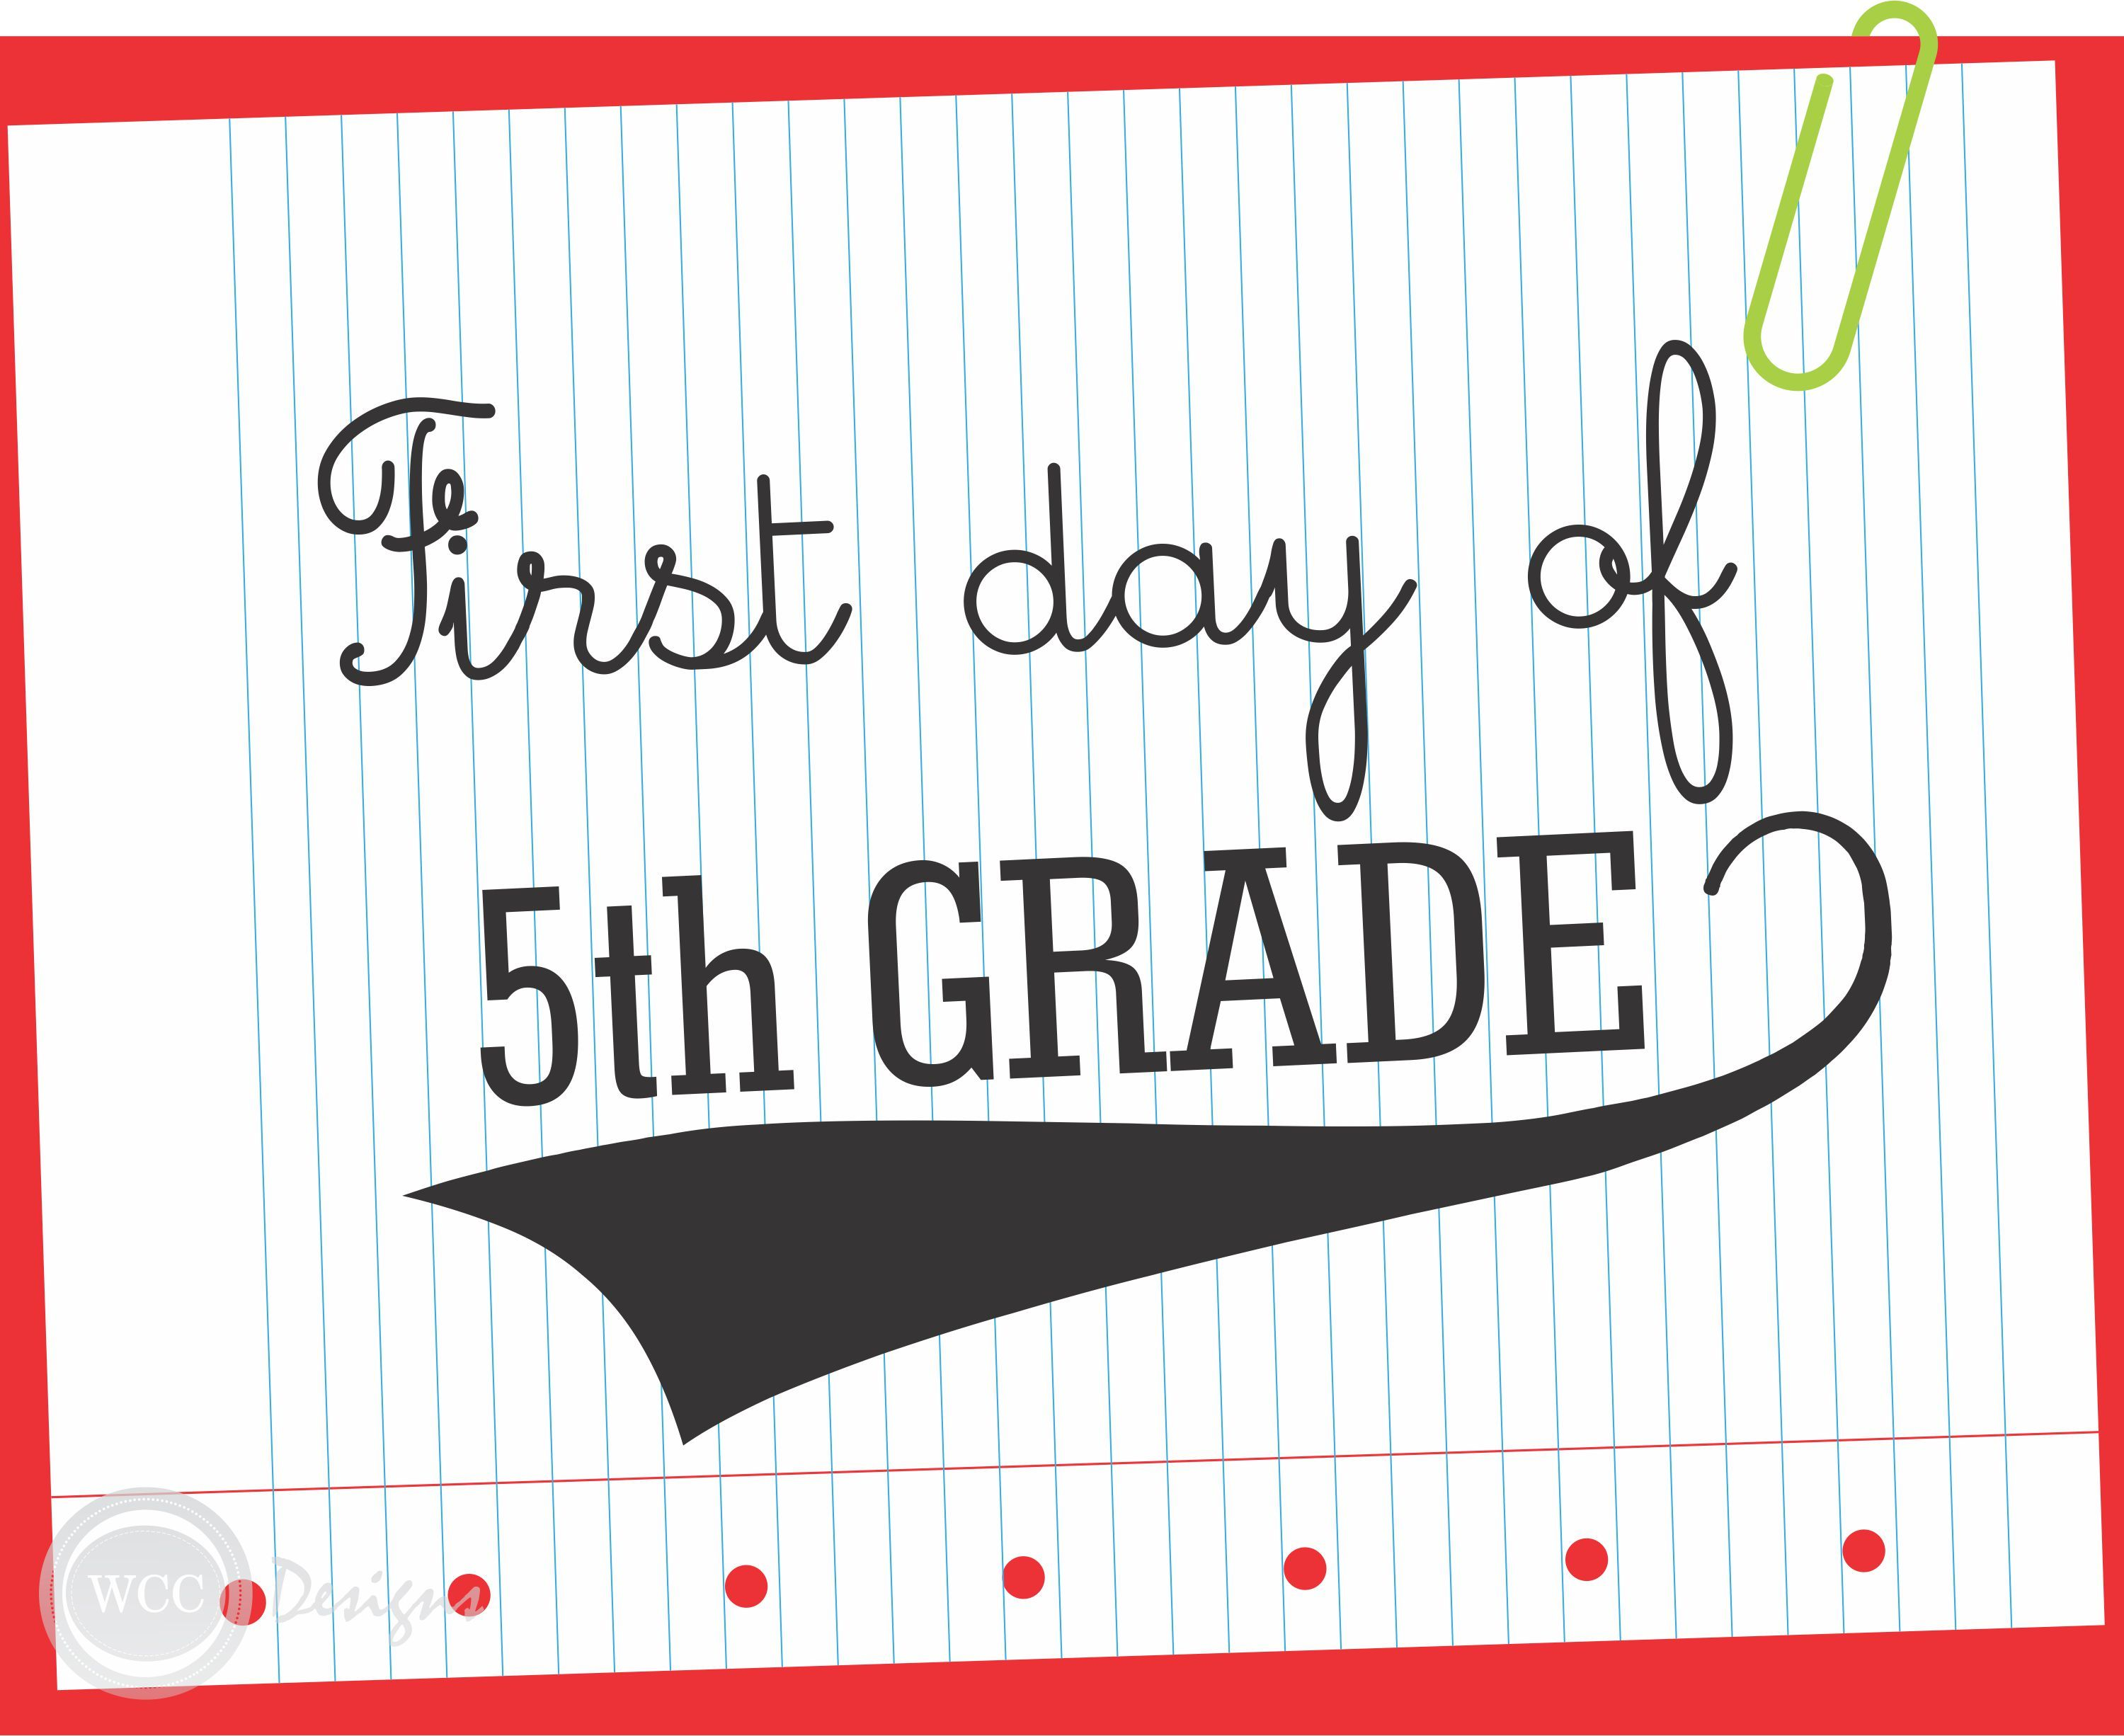 graphic regarding First Day of 5th Grade Printable named cost-free-printable-1st Working day OF 5TH Quality-indicator clroom suggestions